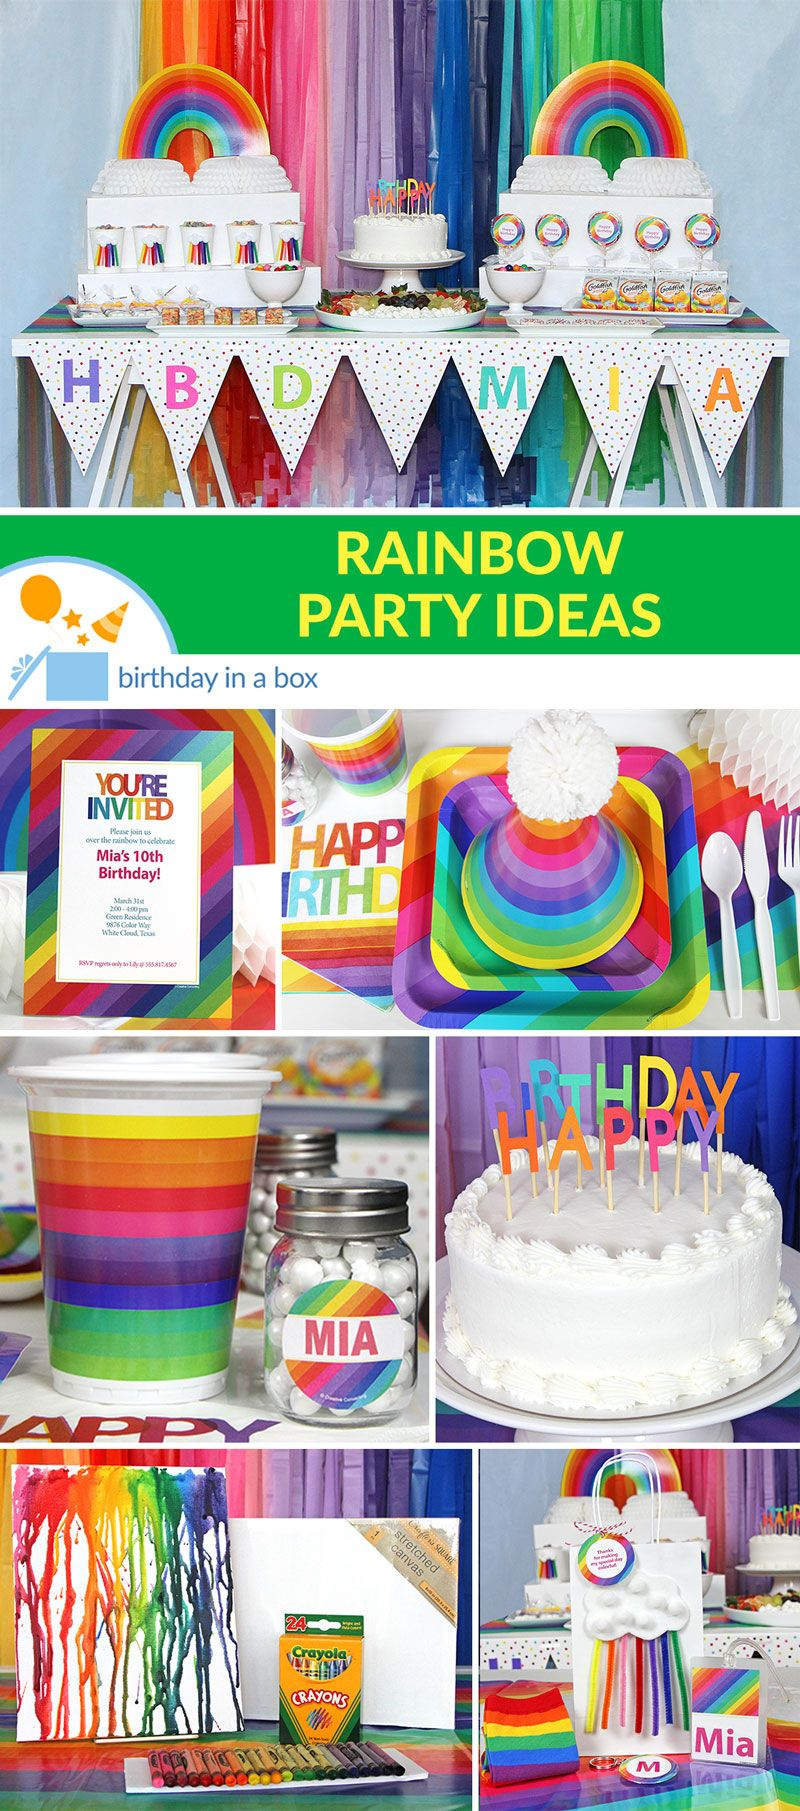 Fun Rainbow Birthday Party Foil Cone Hats Pack of 24 Multi Colored